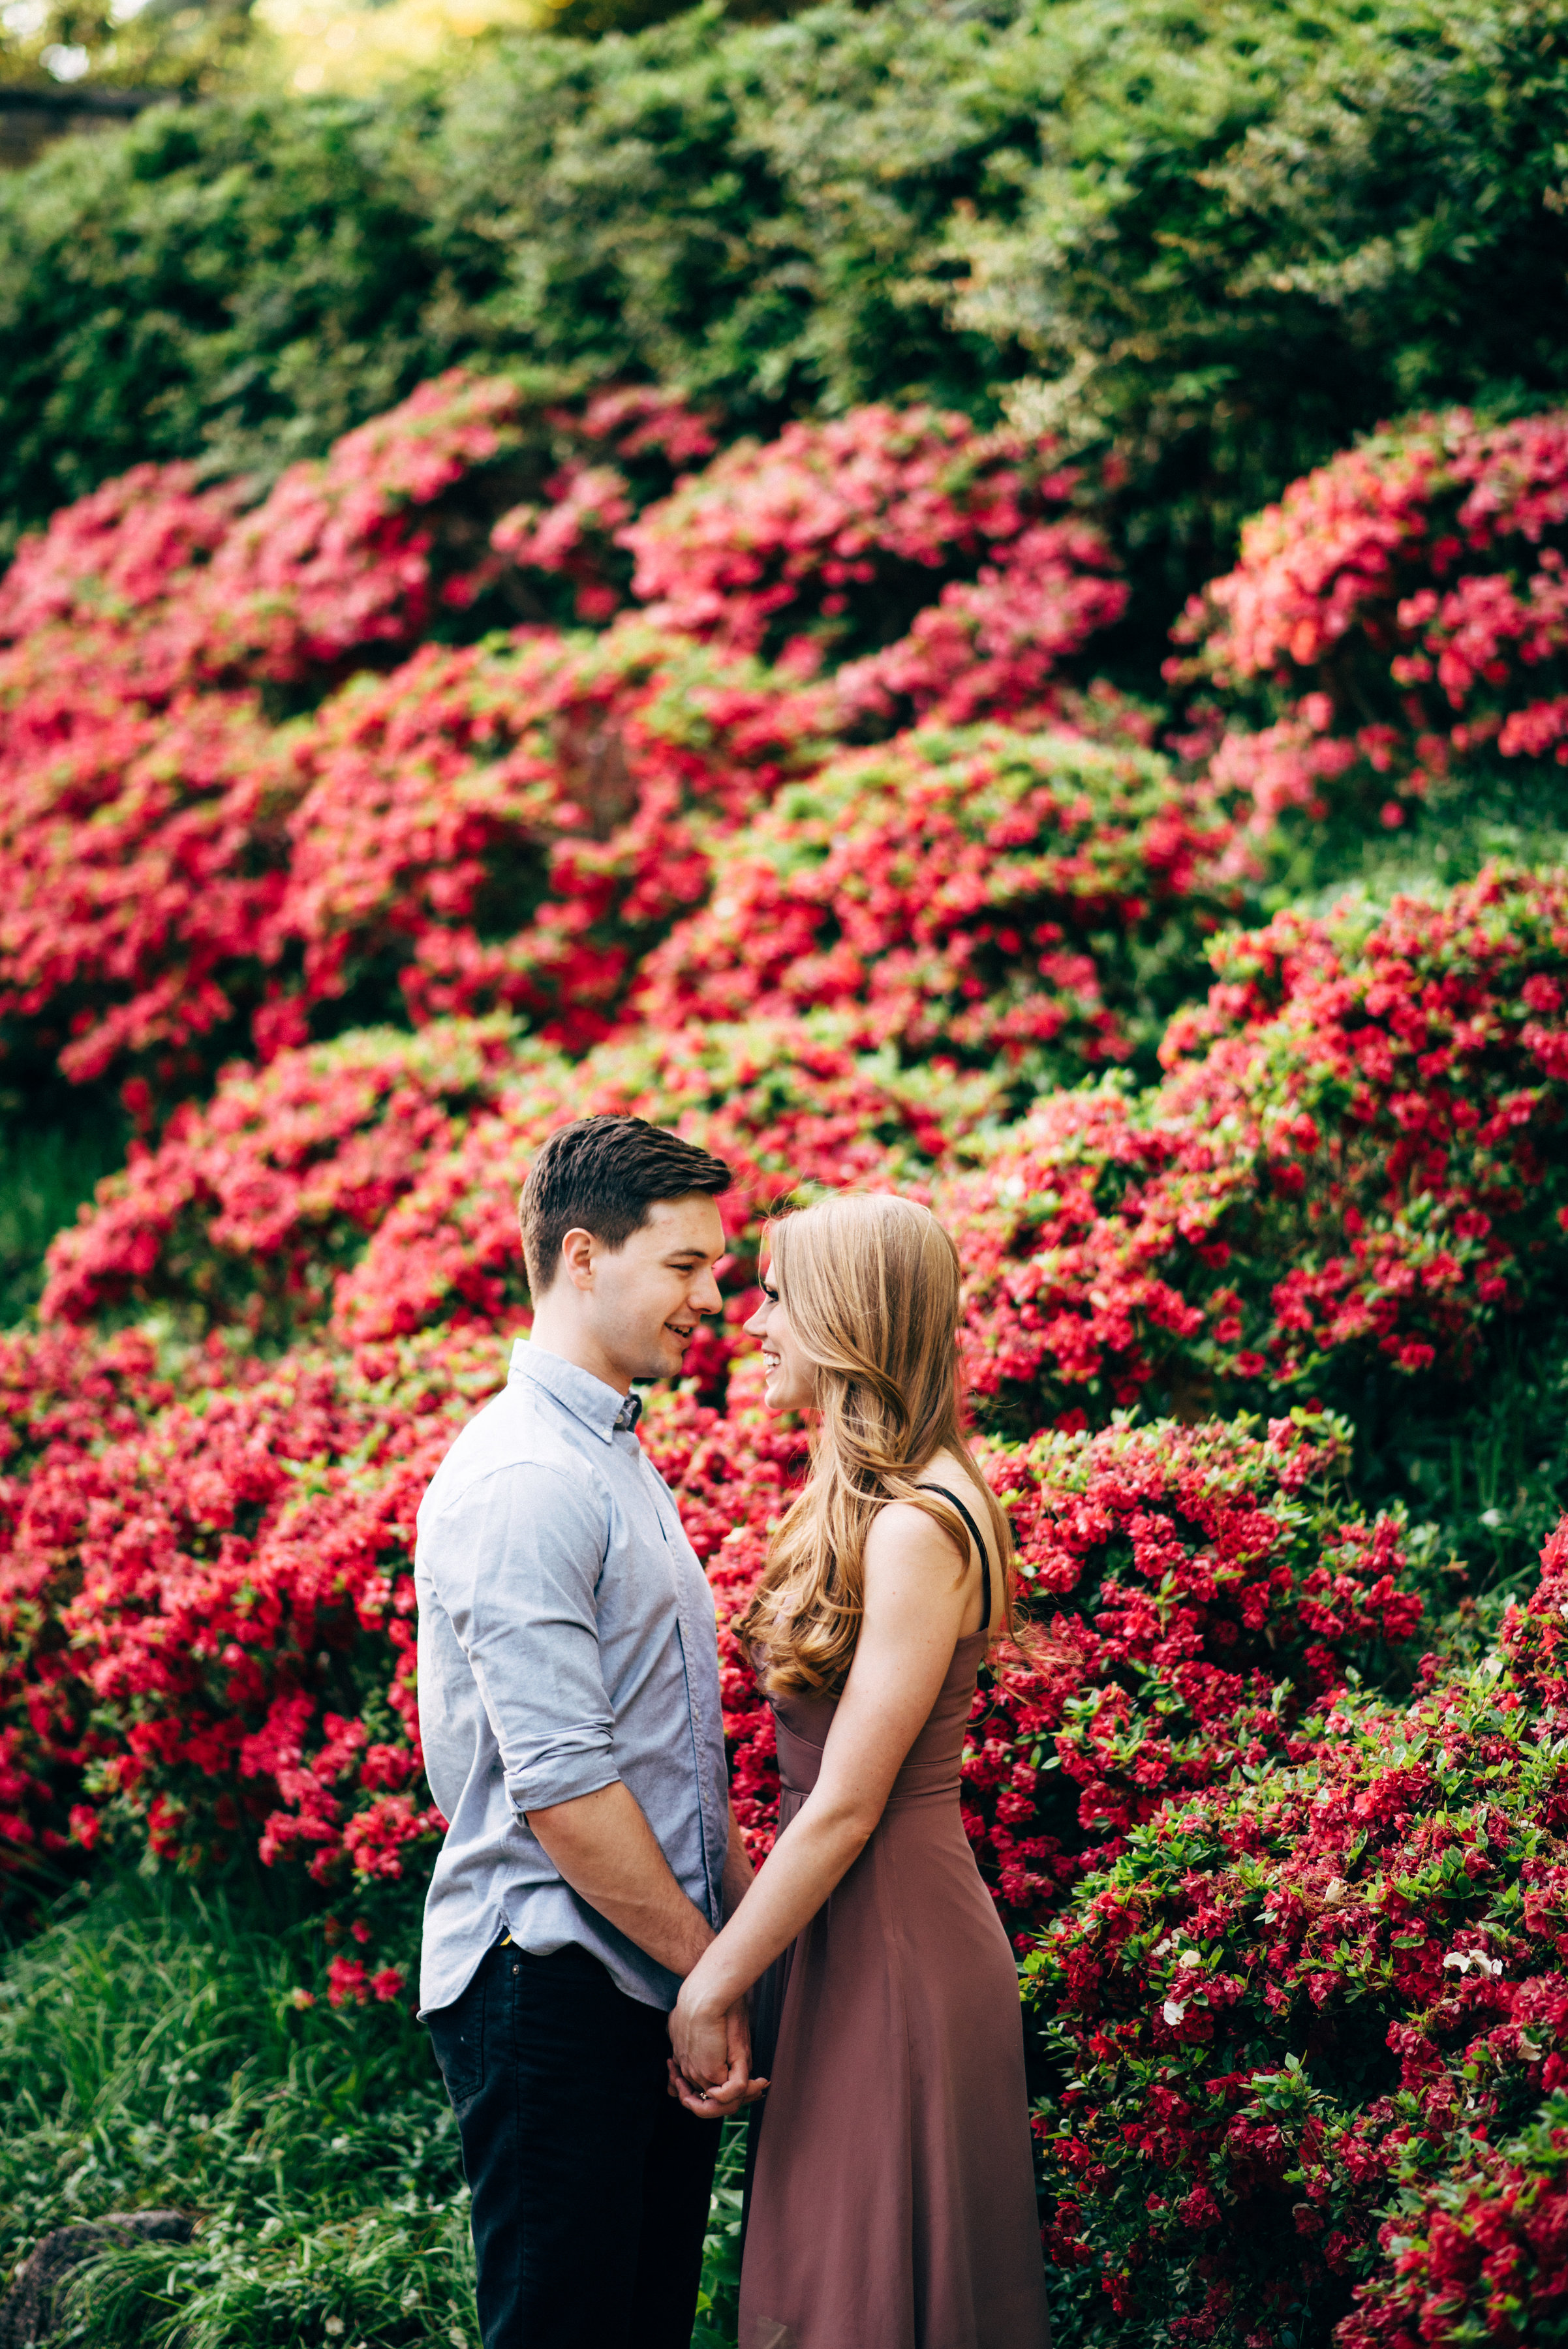 engagement-photographer-maymont-park-Richmond-Virginia-Lindsey-Paradiso-photography-135.jpg